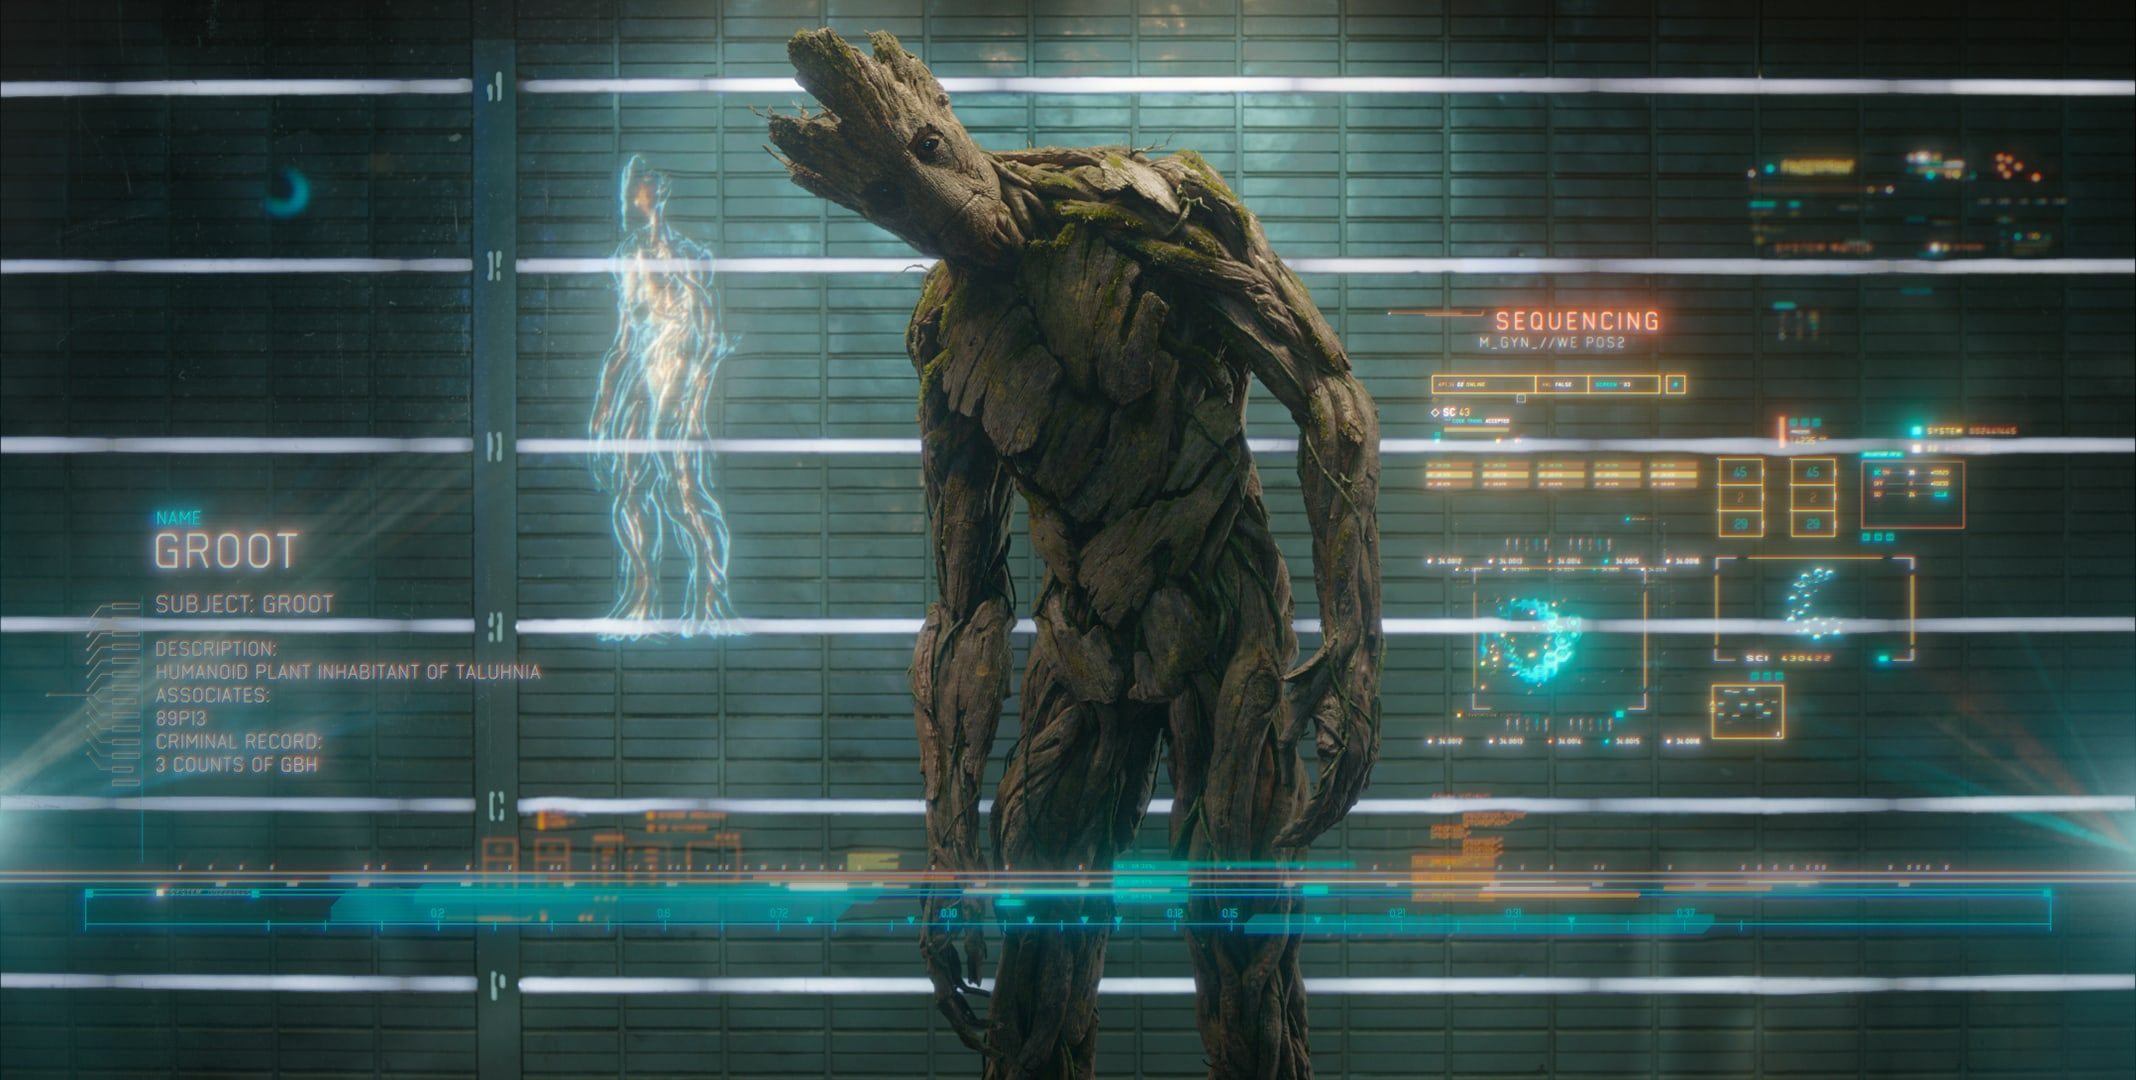 Groot Voiced by Vin Diesel in the movie Guardians of the Galaxy